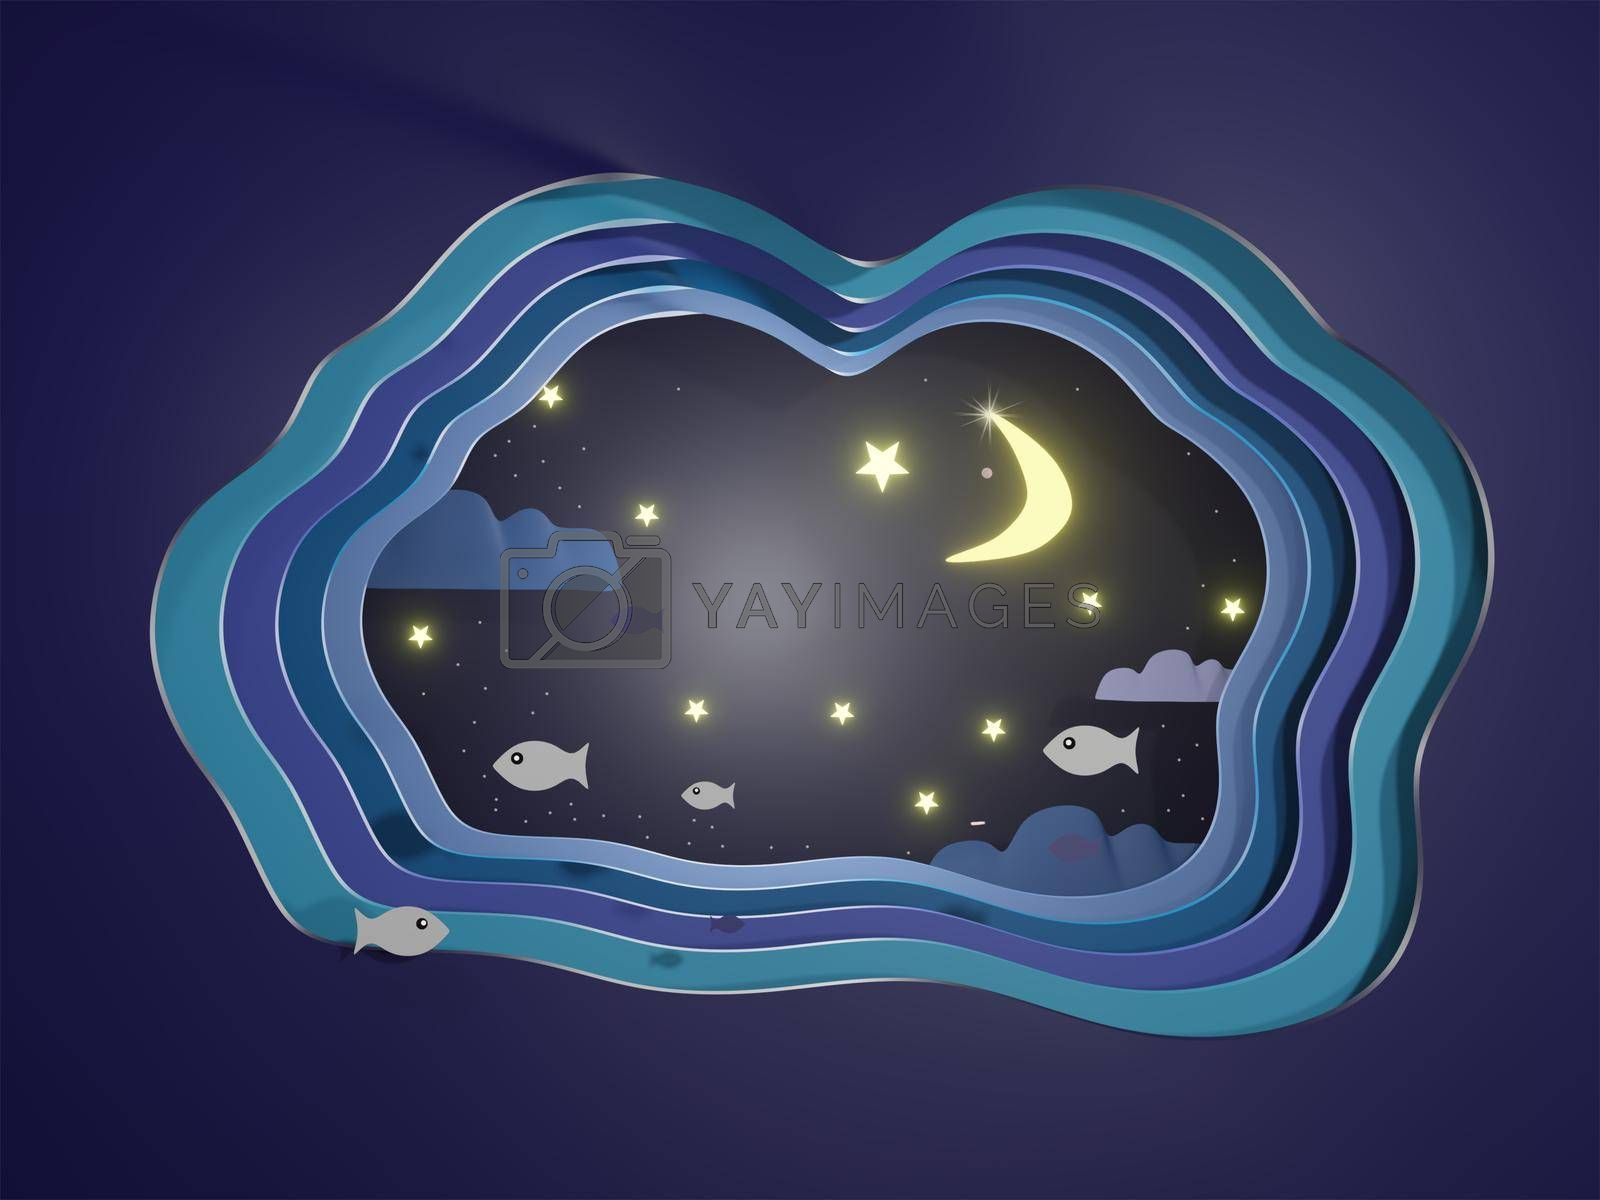 Abstract night sky with stars and fish swimming in the night modern 3d origami paper art style 3d rendering.